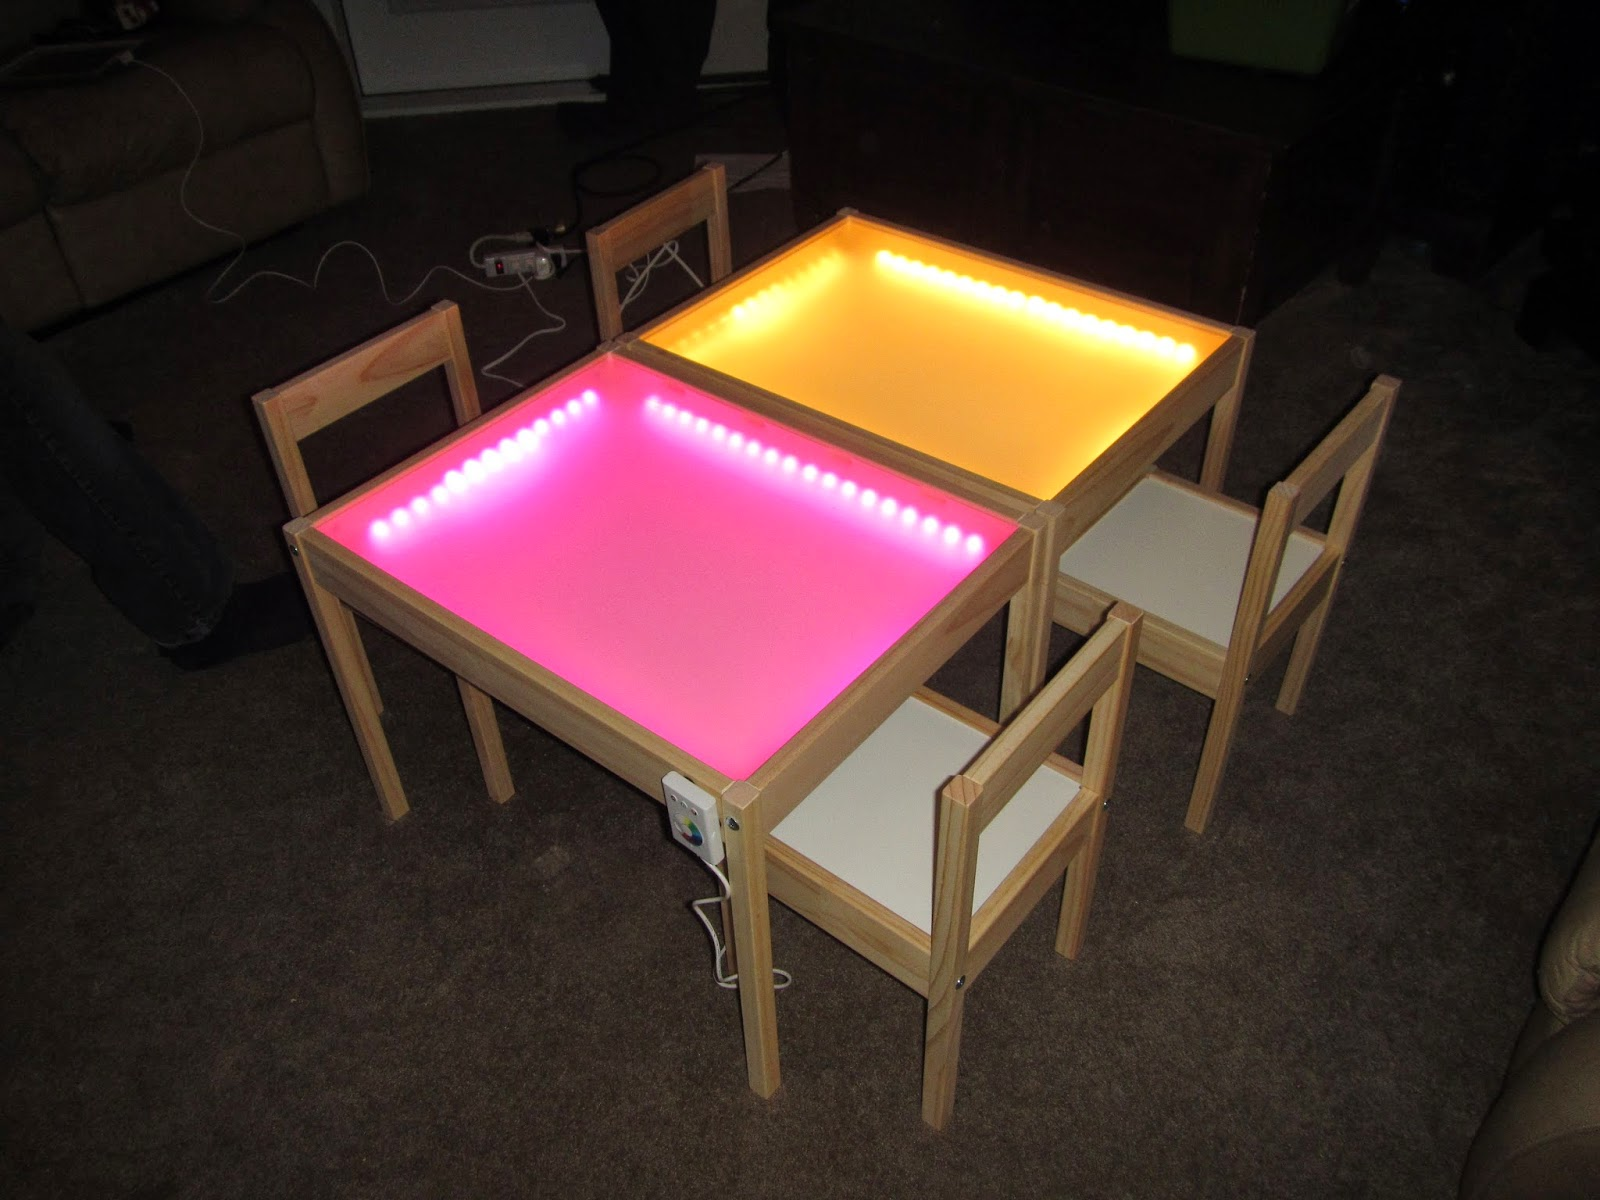 Hobby mommy creations diy light table ikea hack - Ikea iluminacion led ...